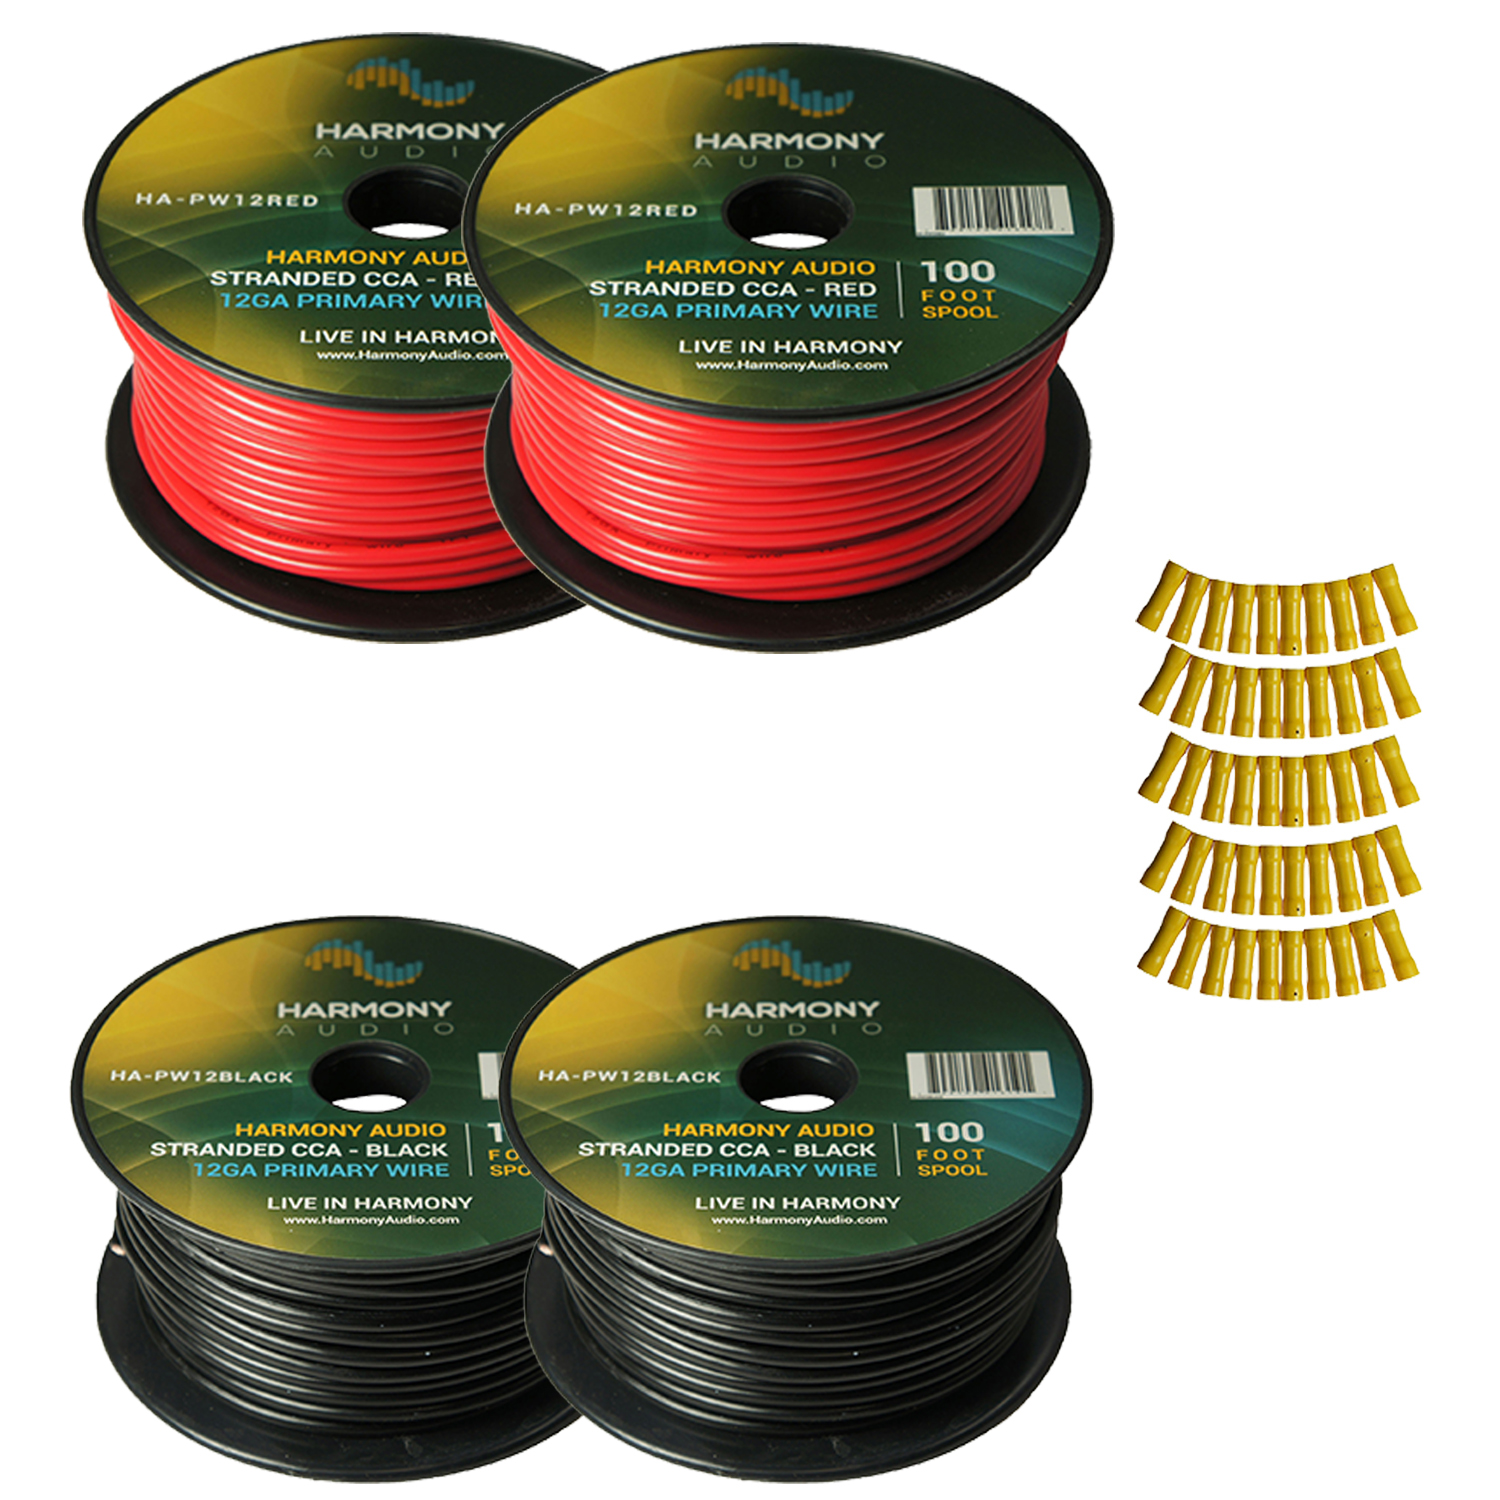 Harmony Audio Primary Single Conductor 12 Gauge Power or Ground Wire - 4 Rolls - 400 Feet - Red & Black for Car Audio / Trailer / Model Train / Remote